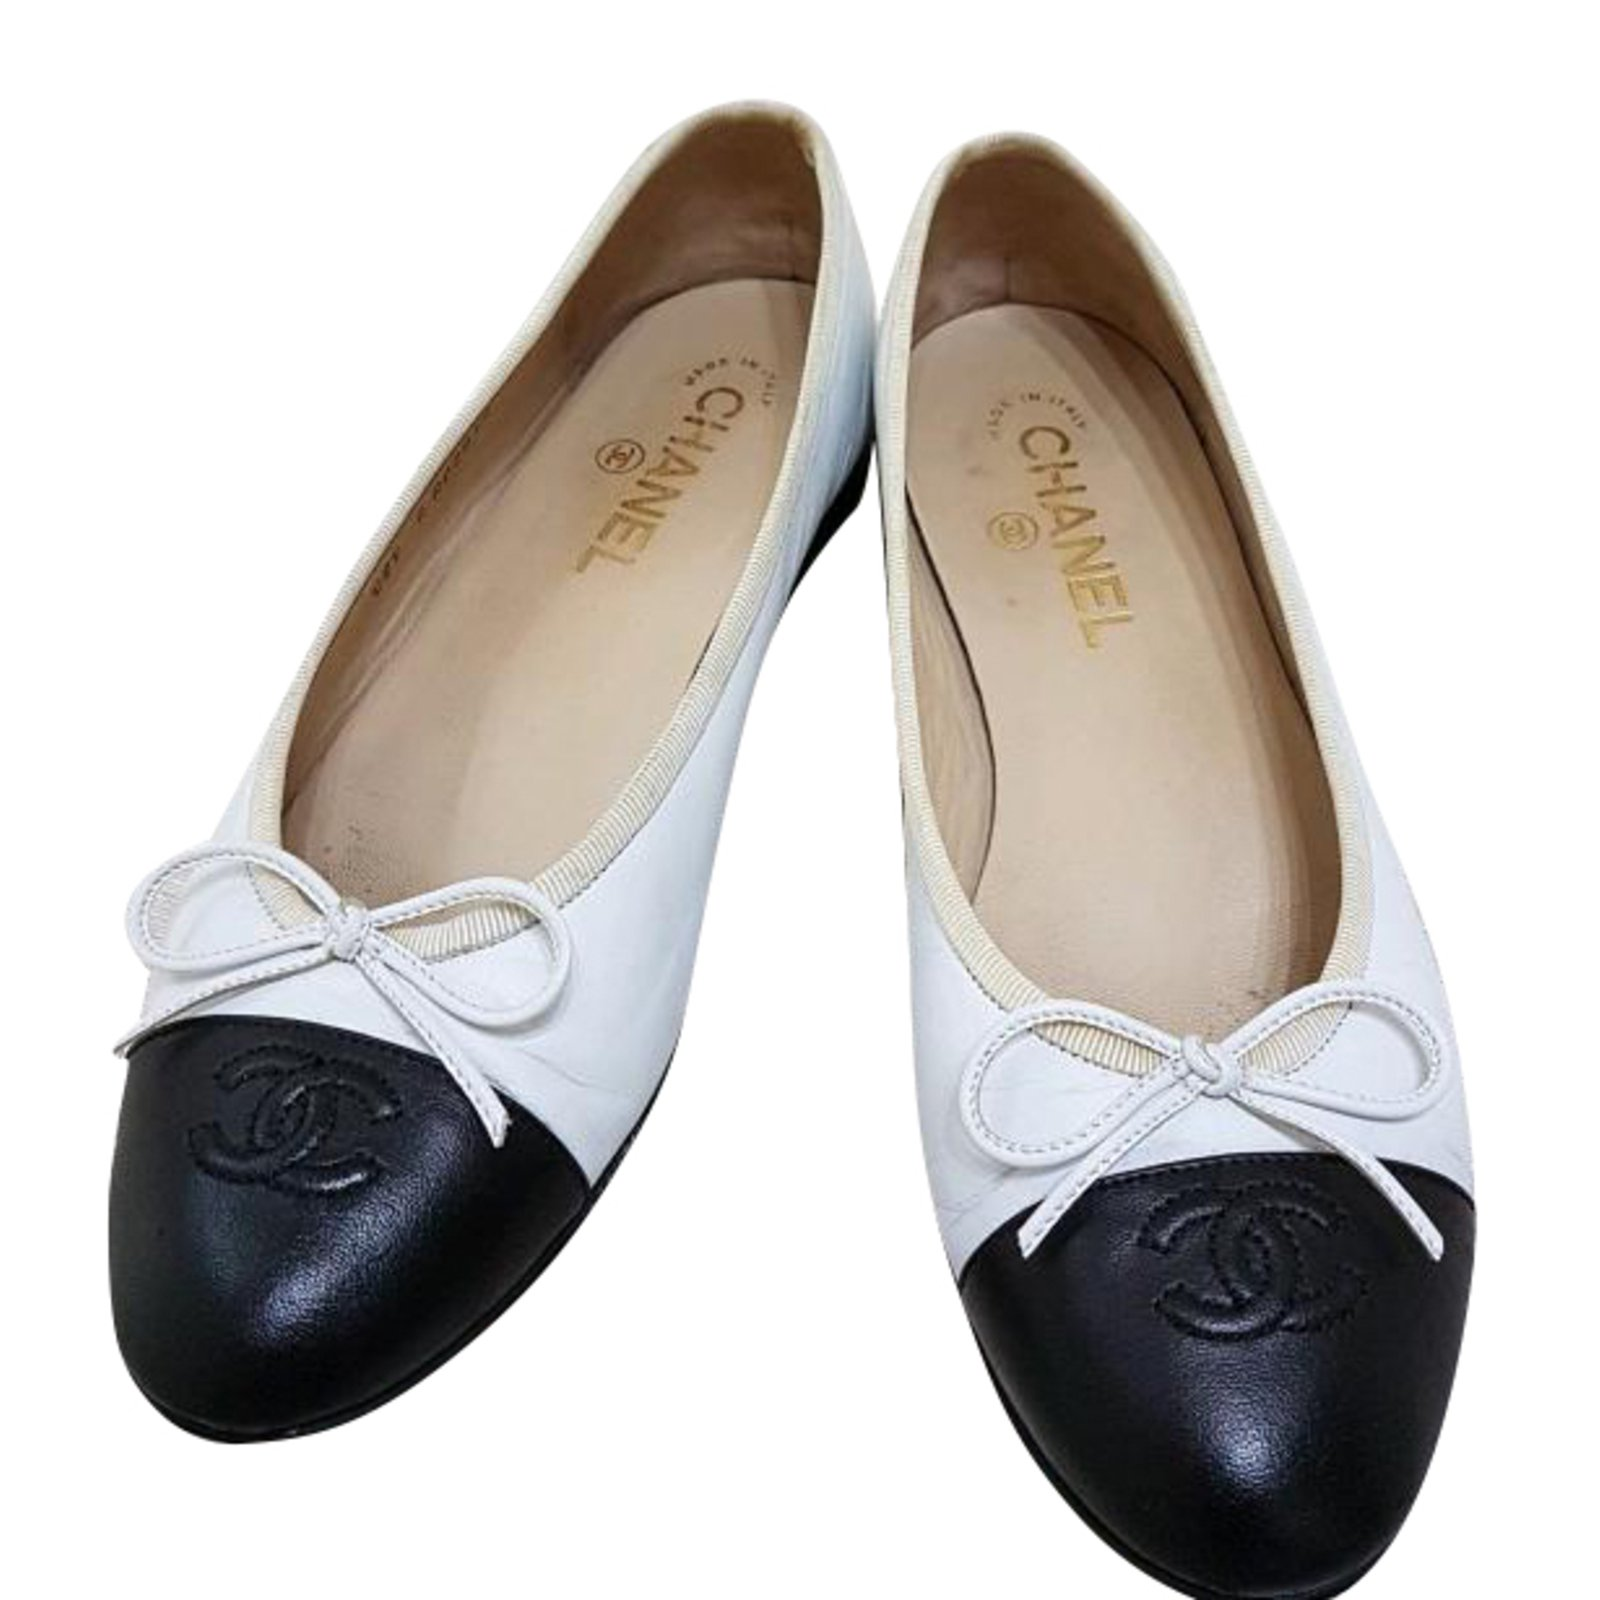 Ballerines chanel d'occasion